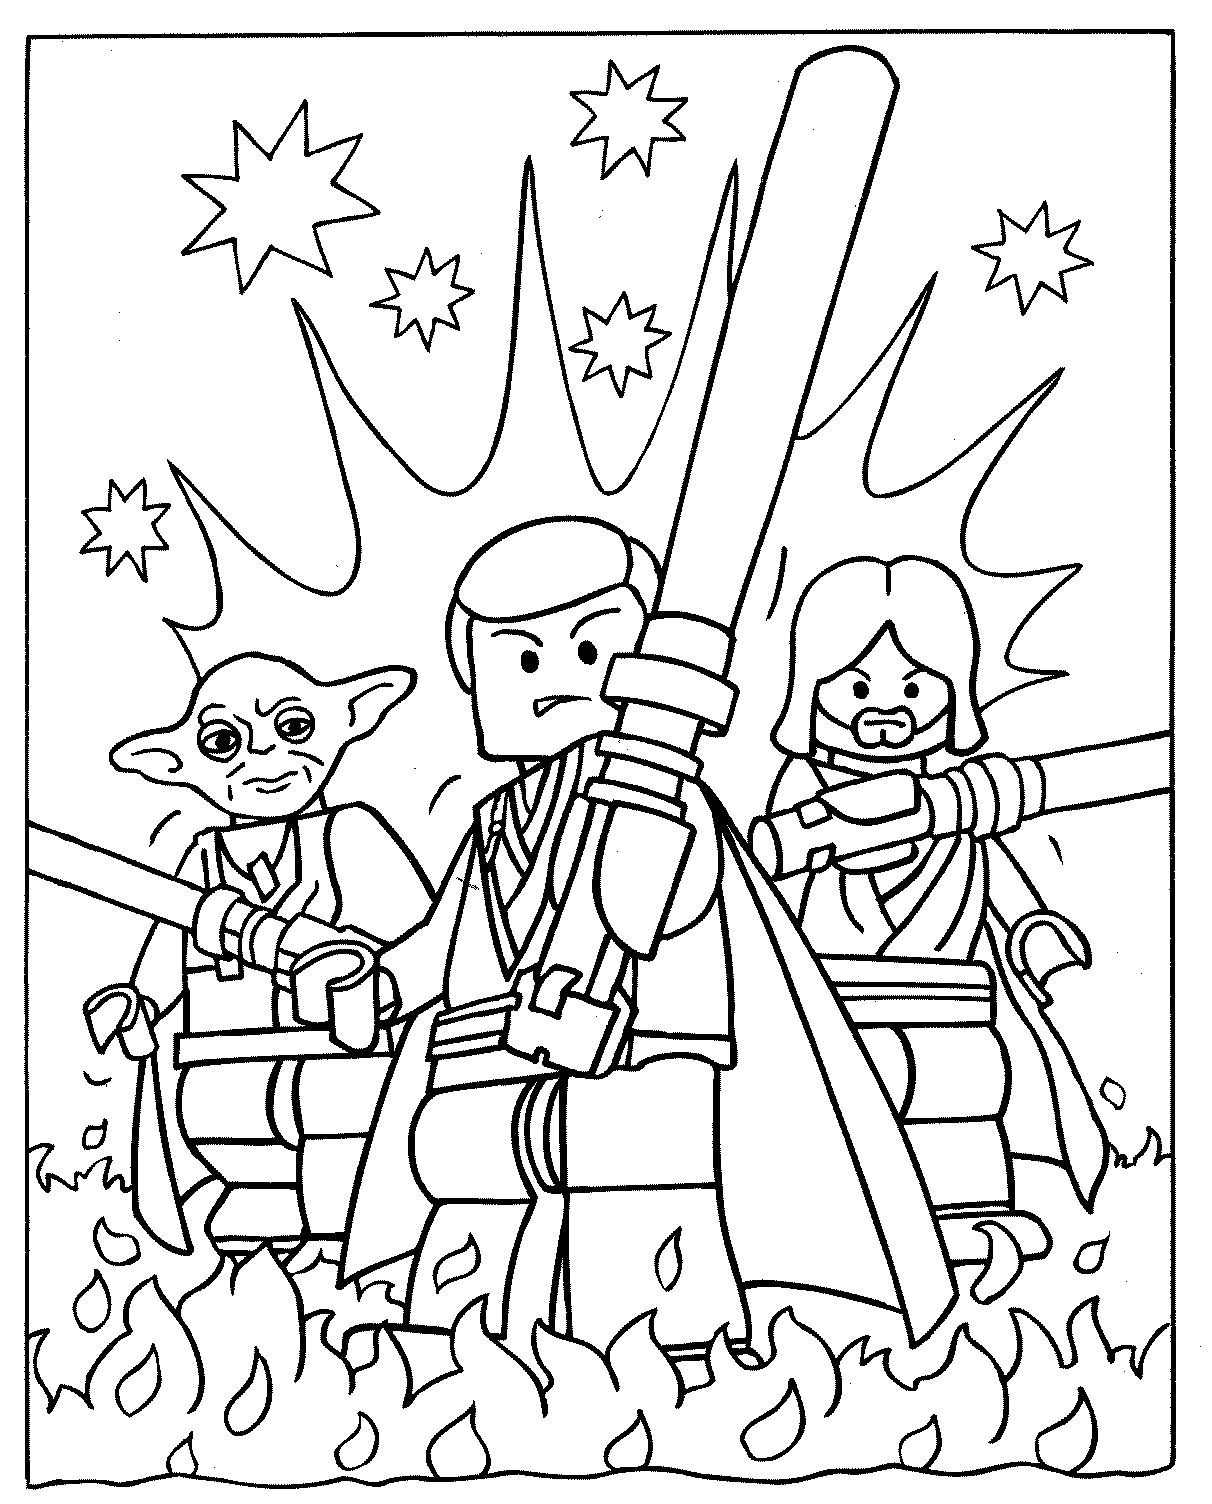 Lego Star Wars Coloring Pages  Free Printable Star Wars Coloring Pages For Kids